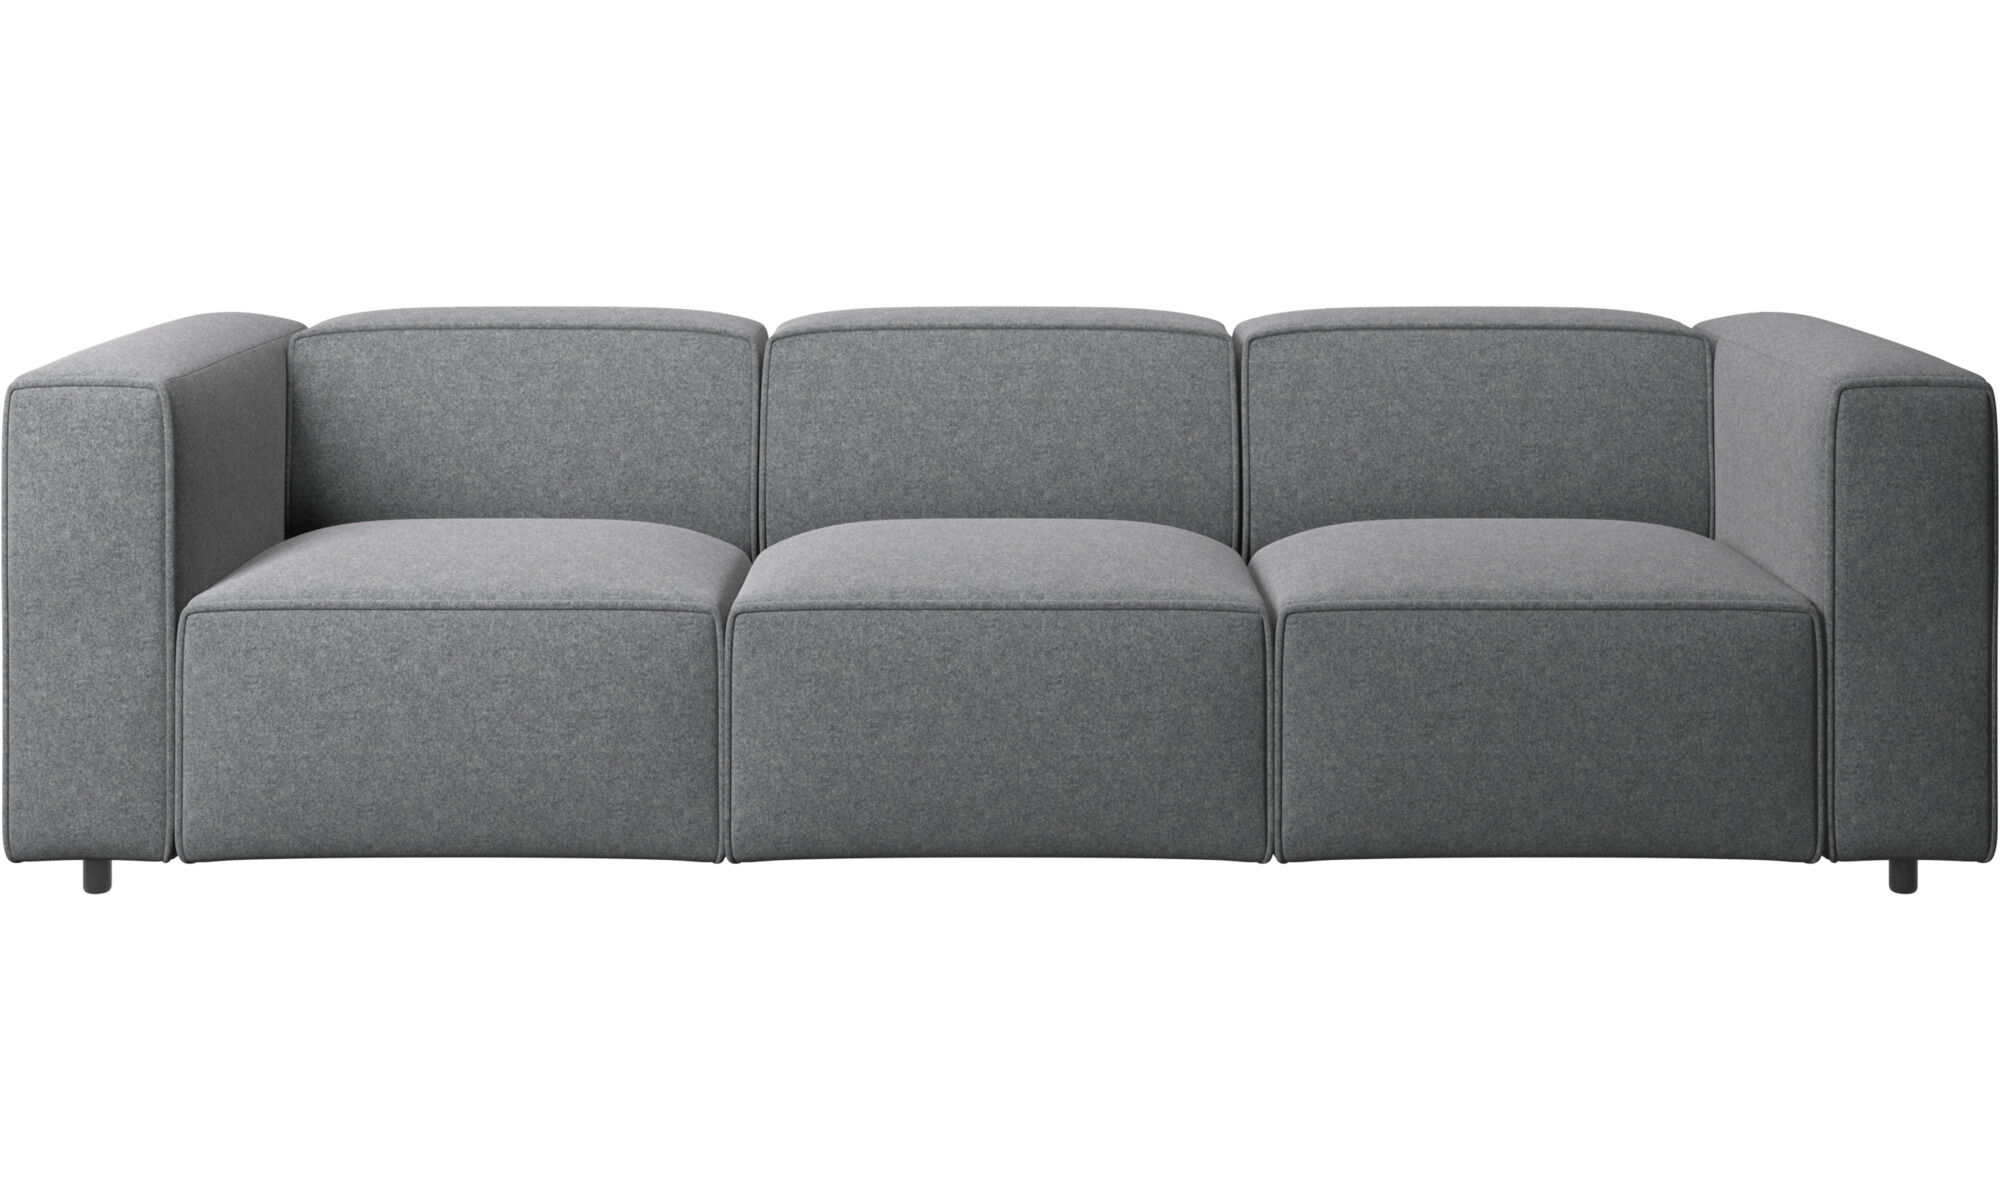 Exceptionnel 3 Seater Sofas   Carmo Sofa   Gray   Fabric ...